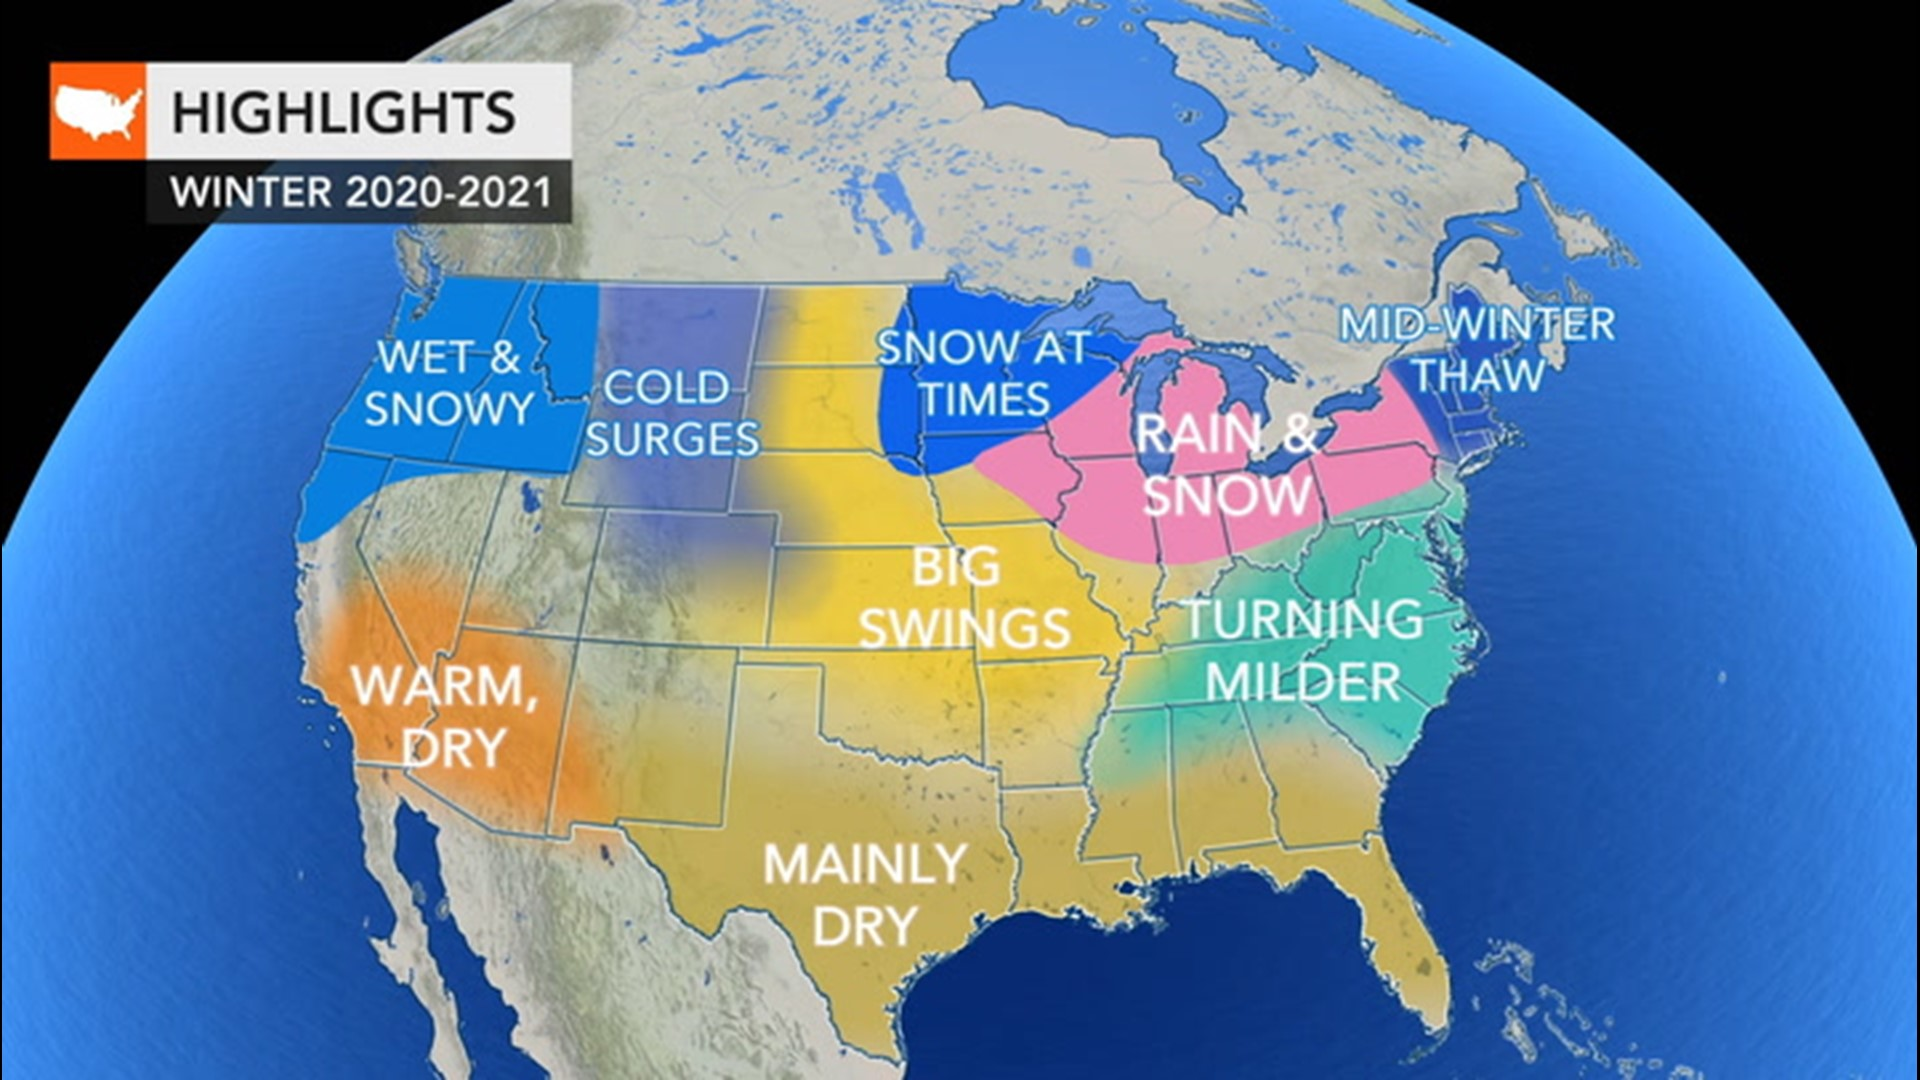 White Christmas Forecast 2020 Usa Winter is coming; here's the winter weather forecast for around